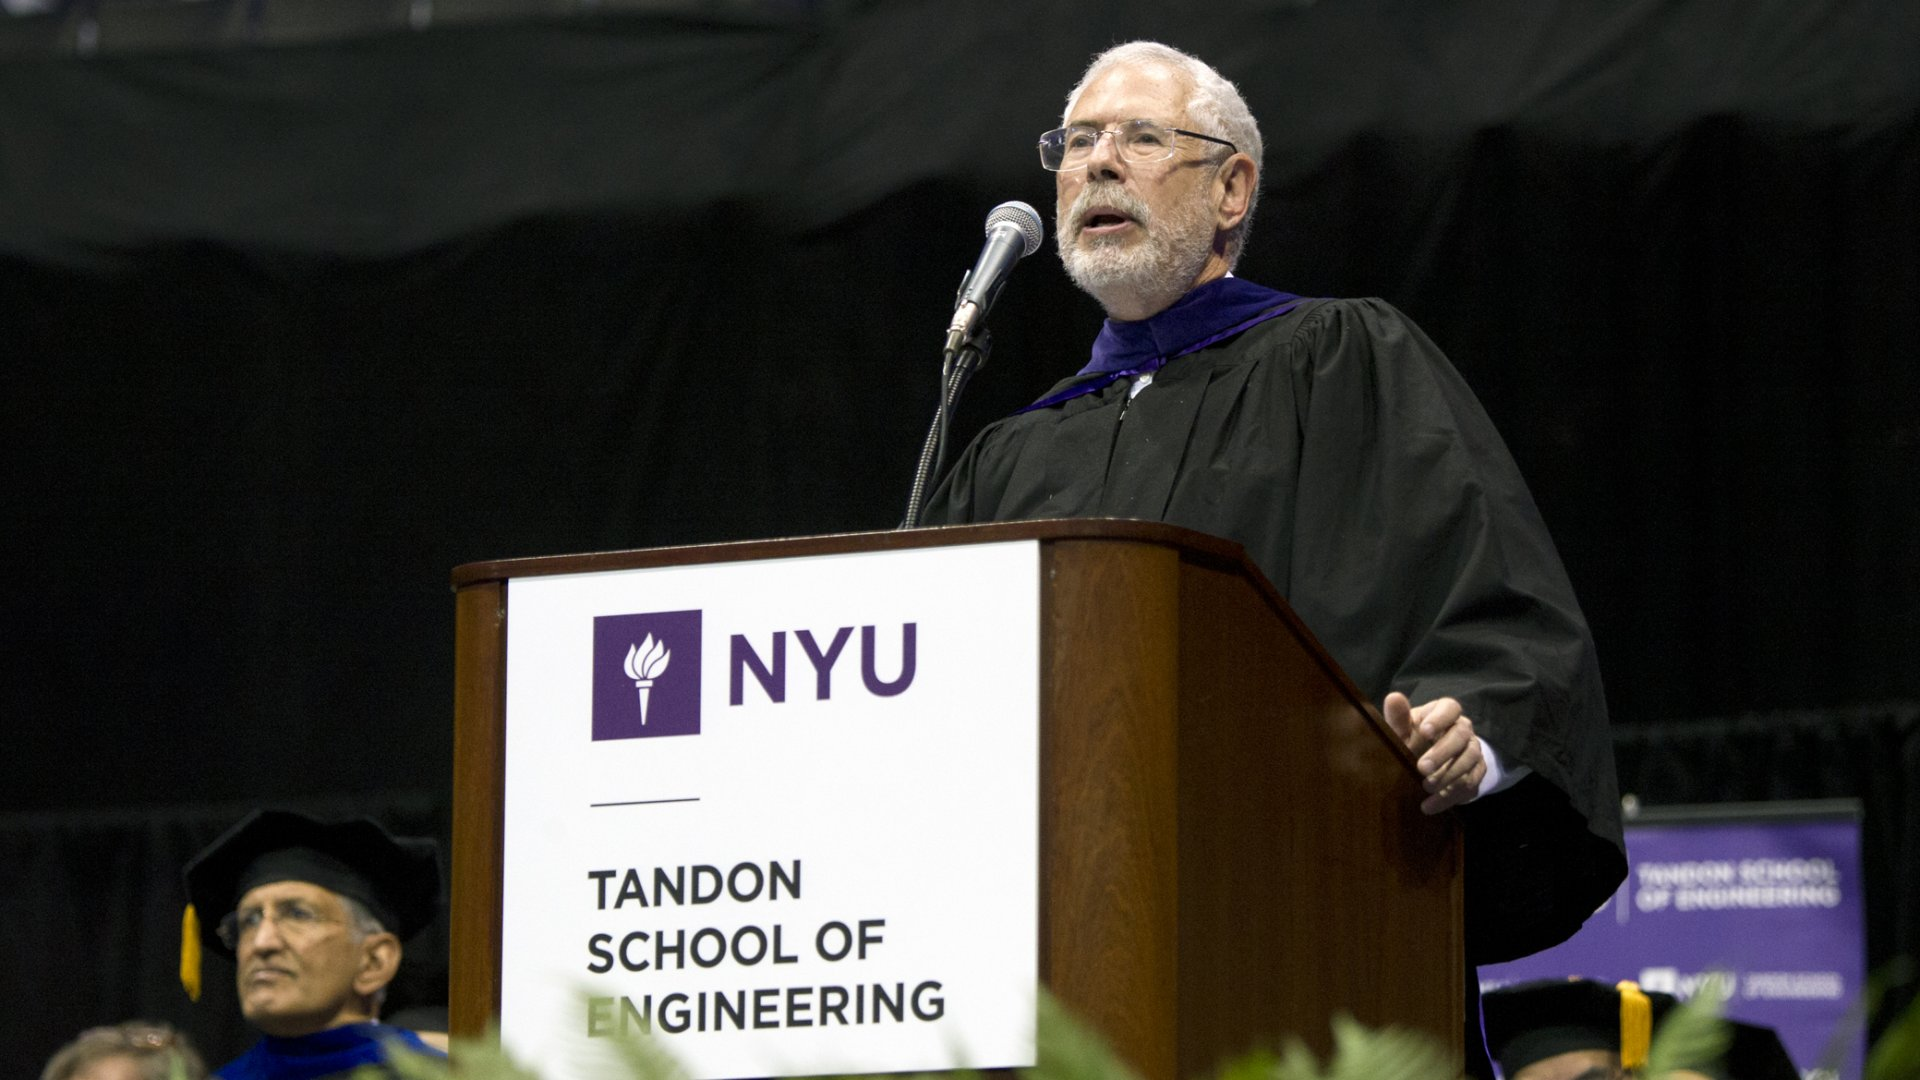 Steve Blank gave the 2016 commencement address at NYU's Tandon School of Engineering on Monday.